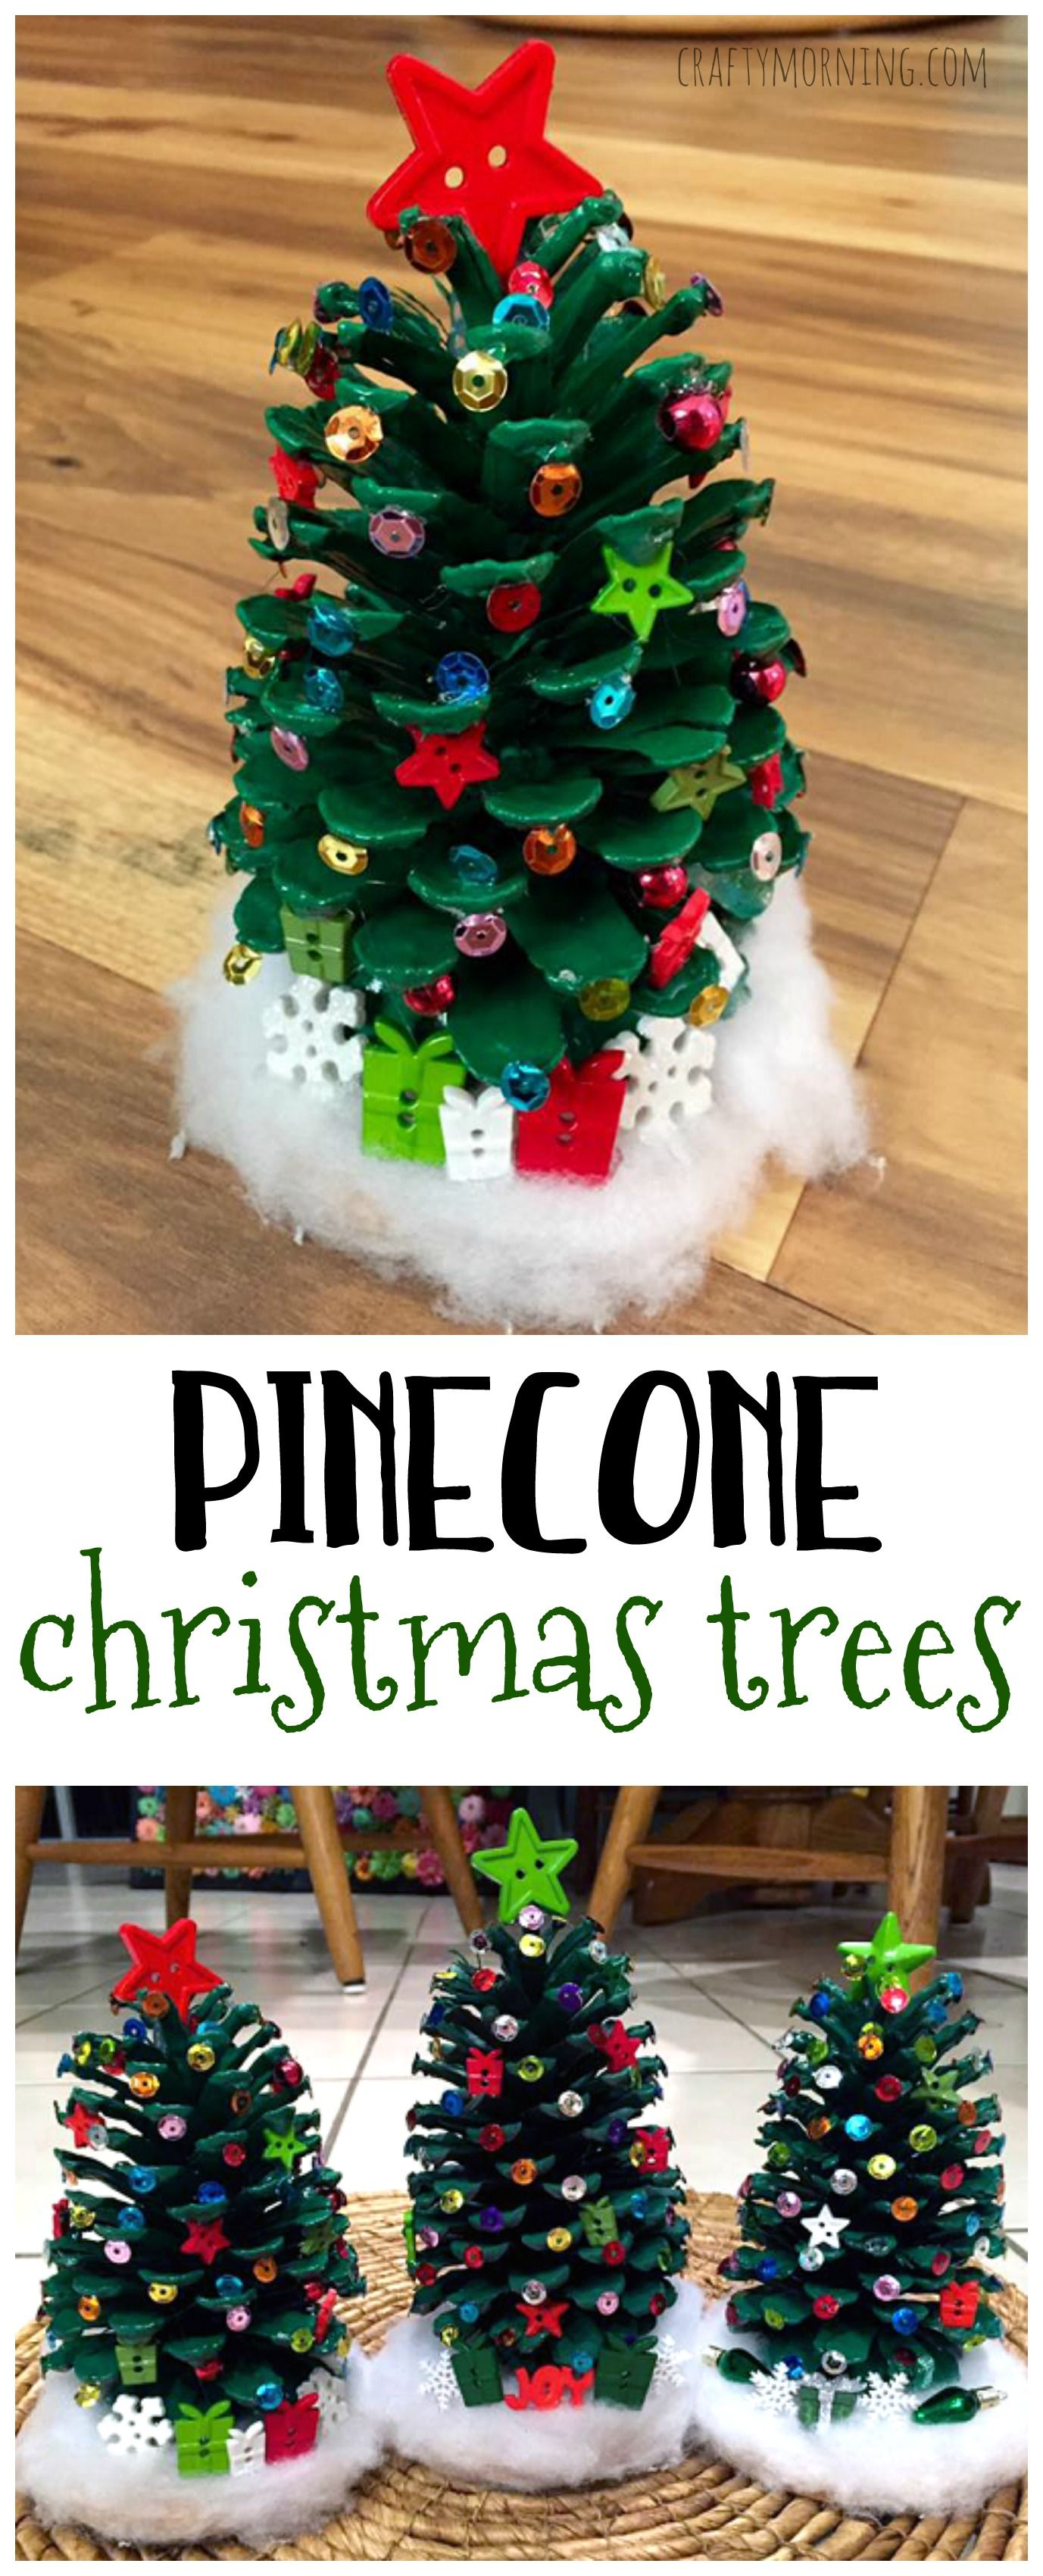 Decorate Pinecone Christmas Trees Christmas crafts